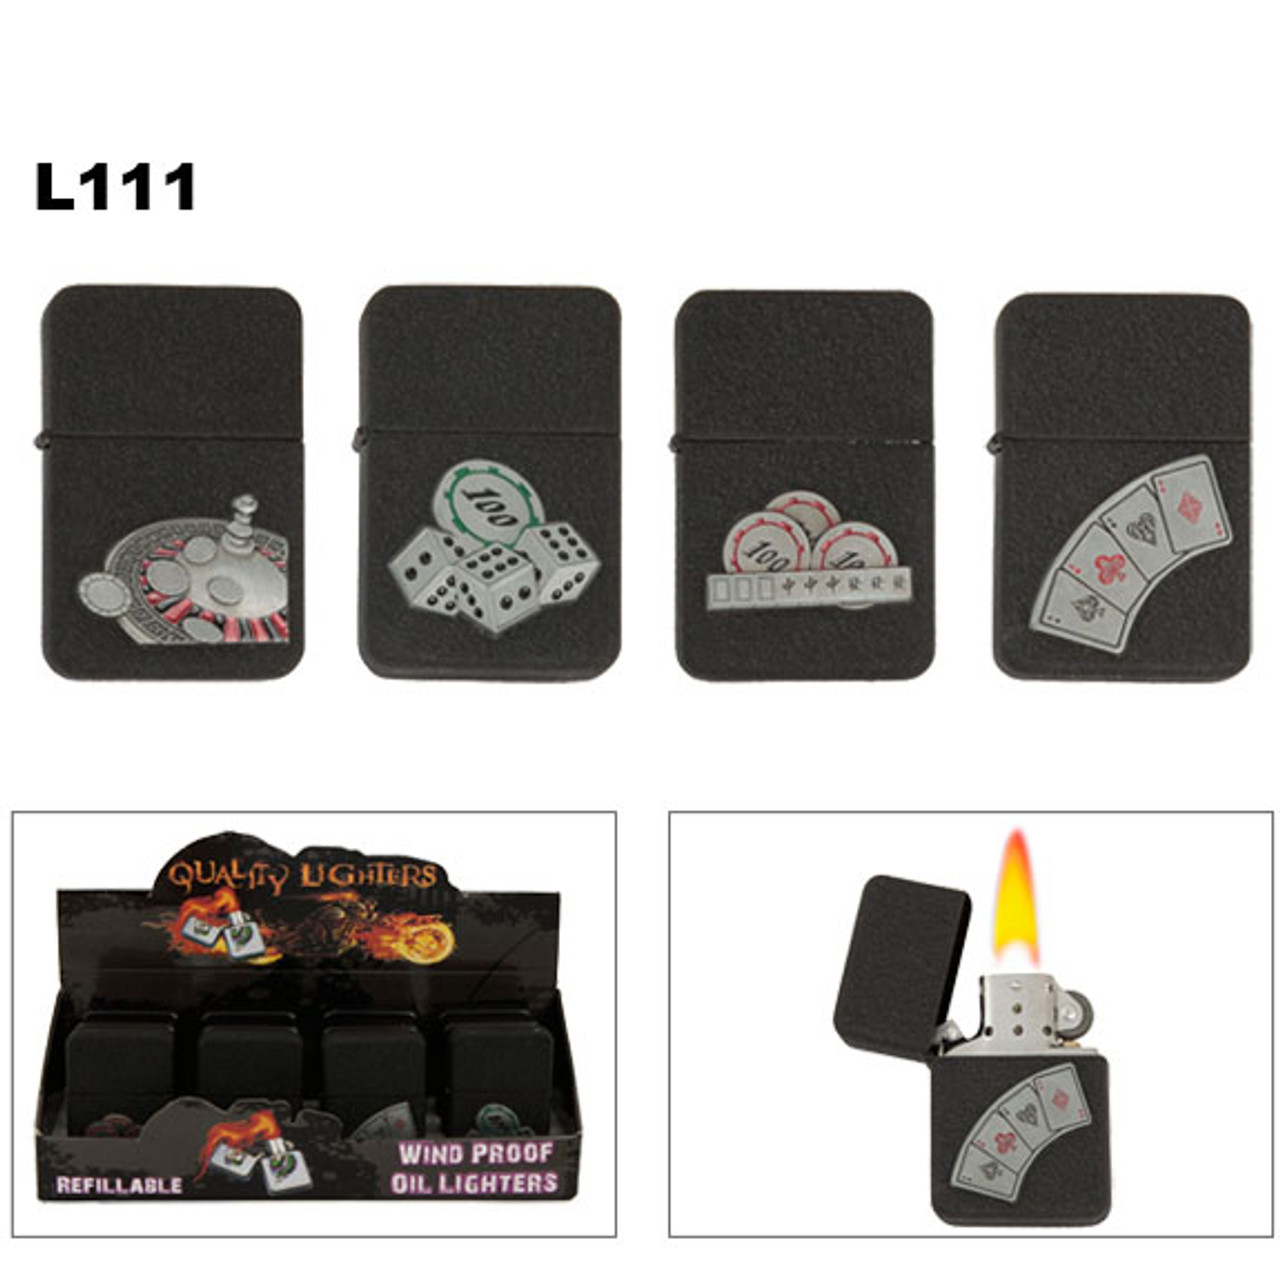 Wholesale Lighters with unique Black Speckle finish and casino inspired emblems.